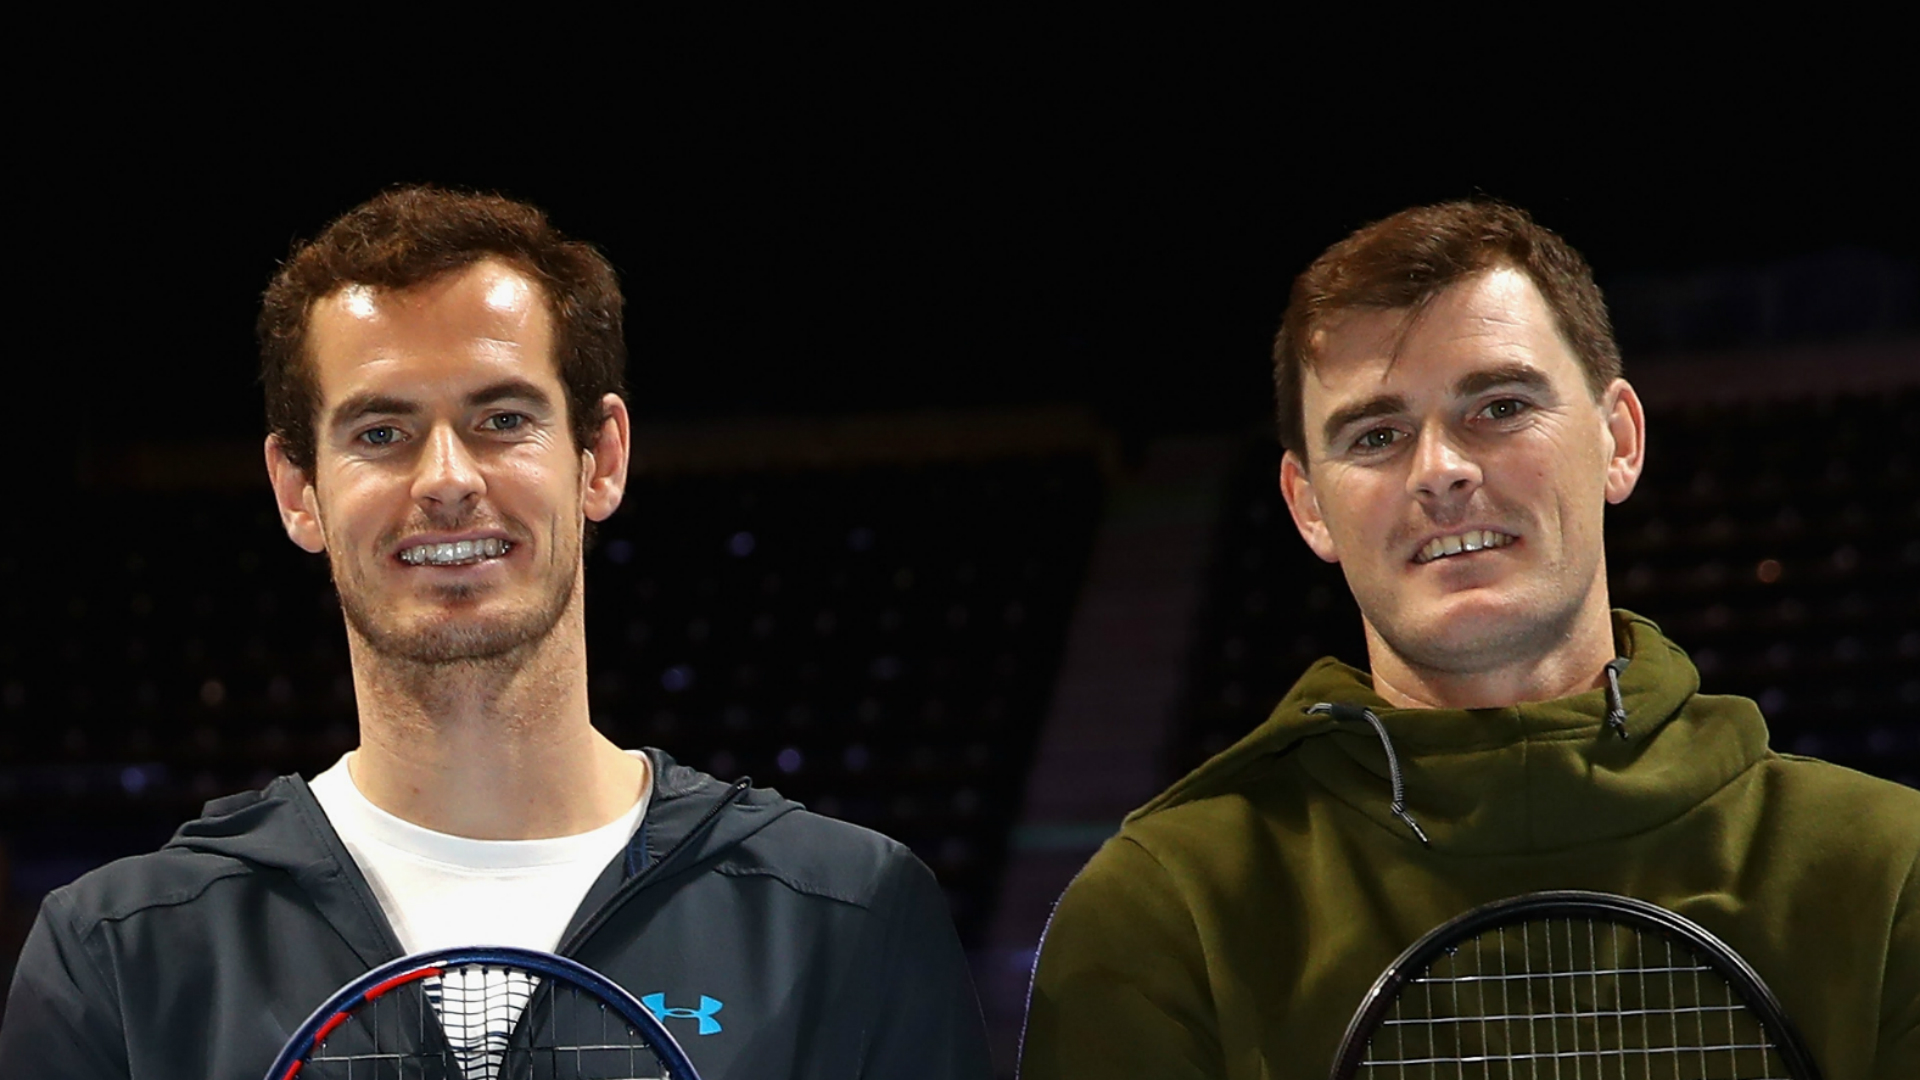 Andy Murray is not ready for singles action yet but will partner brother Jamie in doubles at Washington's Citi Open next week.